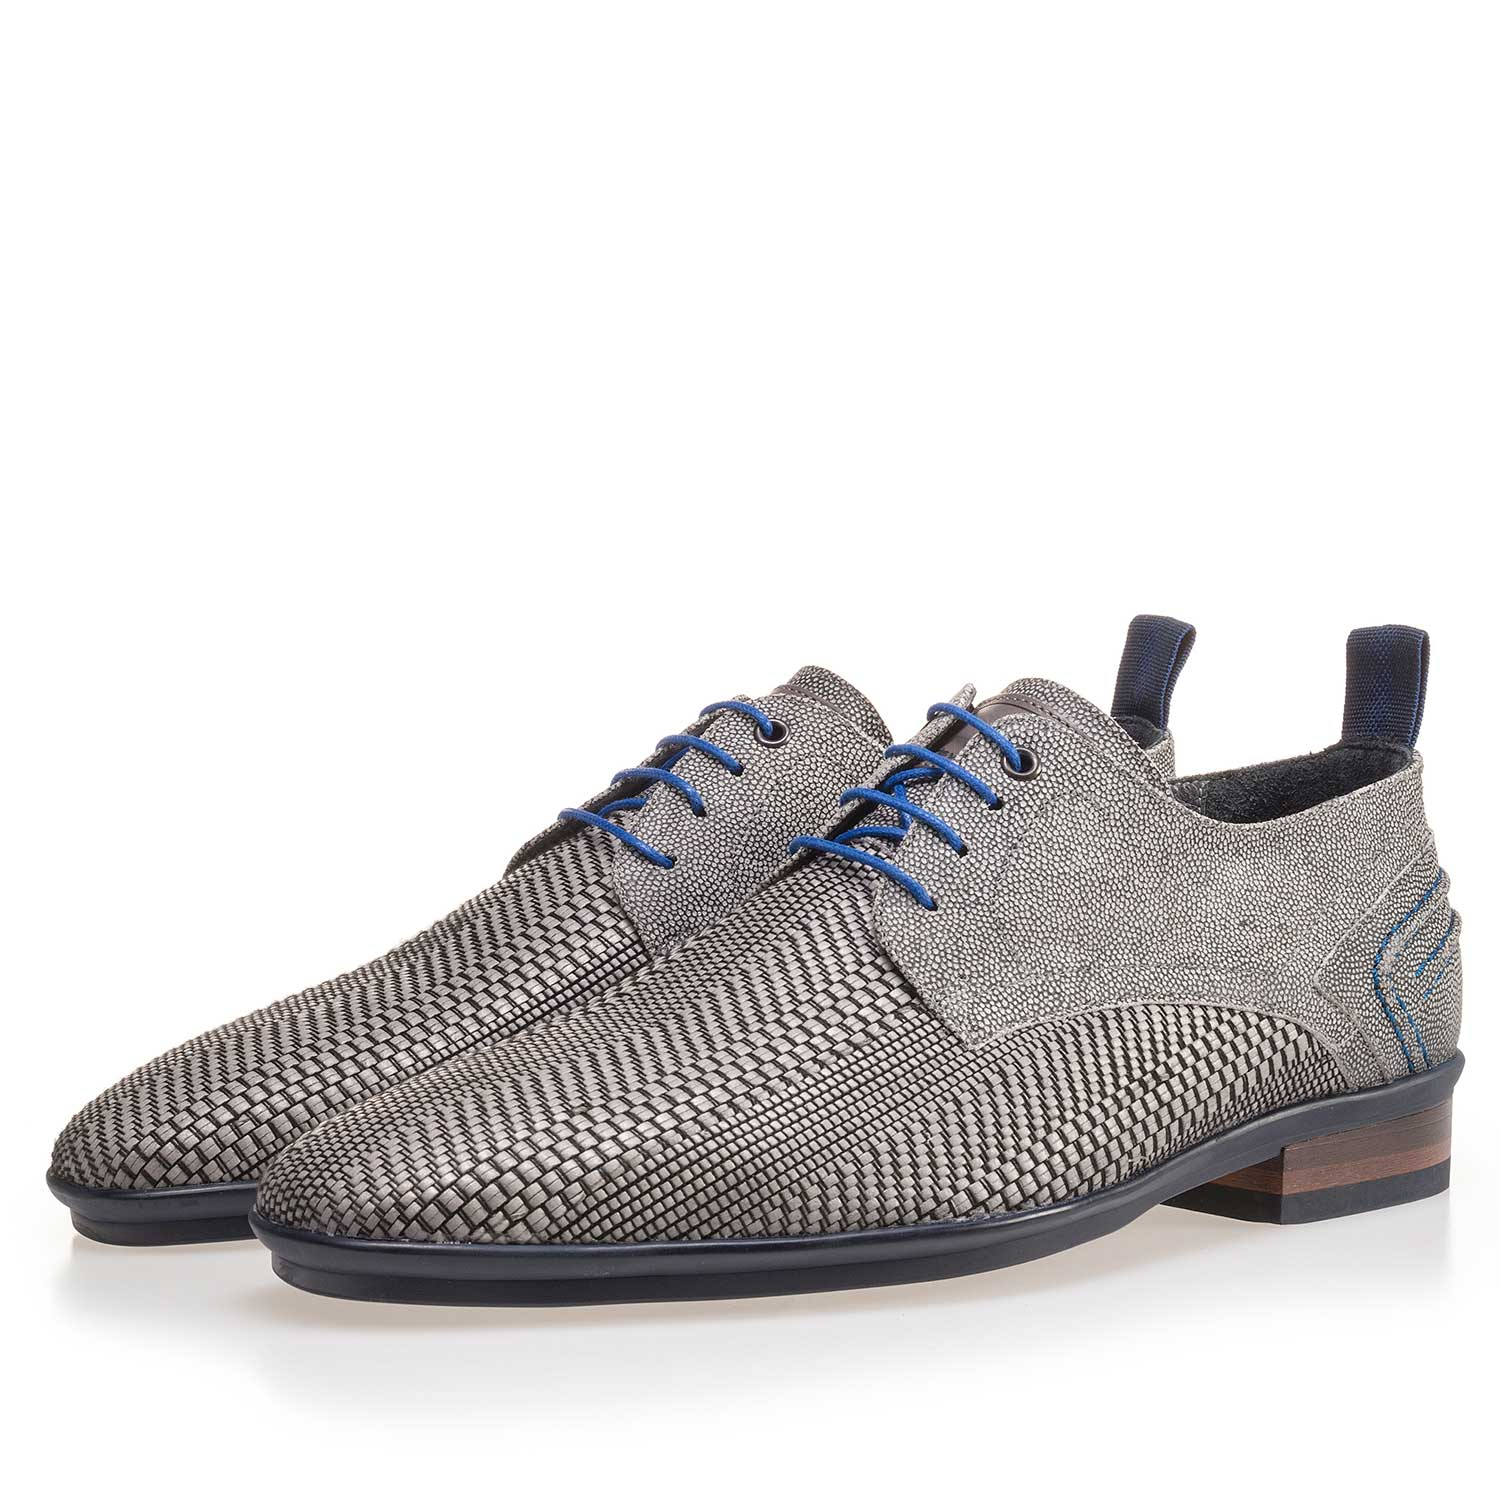 14067/02 - Grey lace shoe made of braided leather